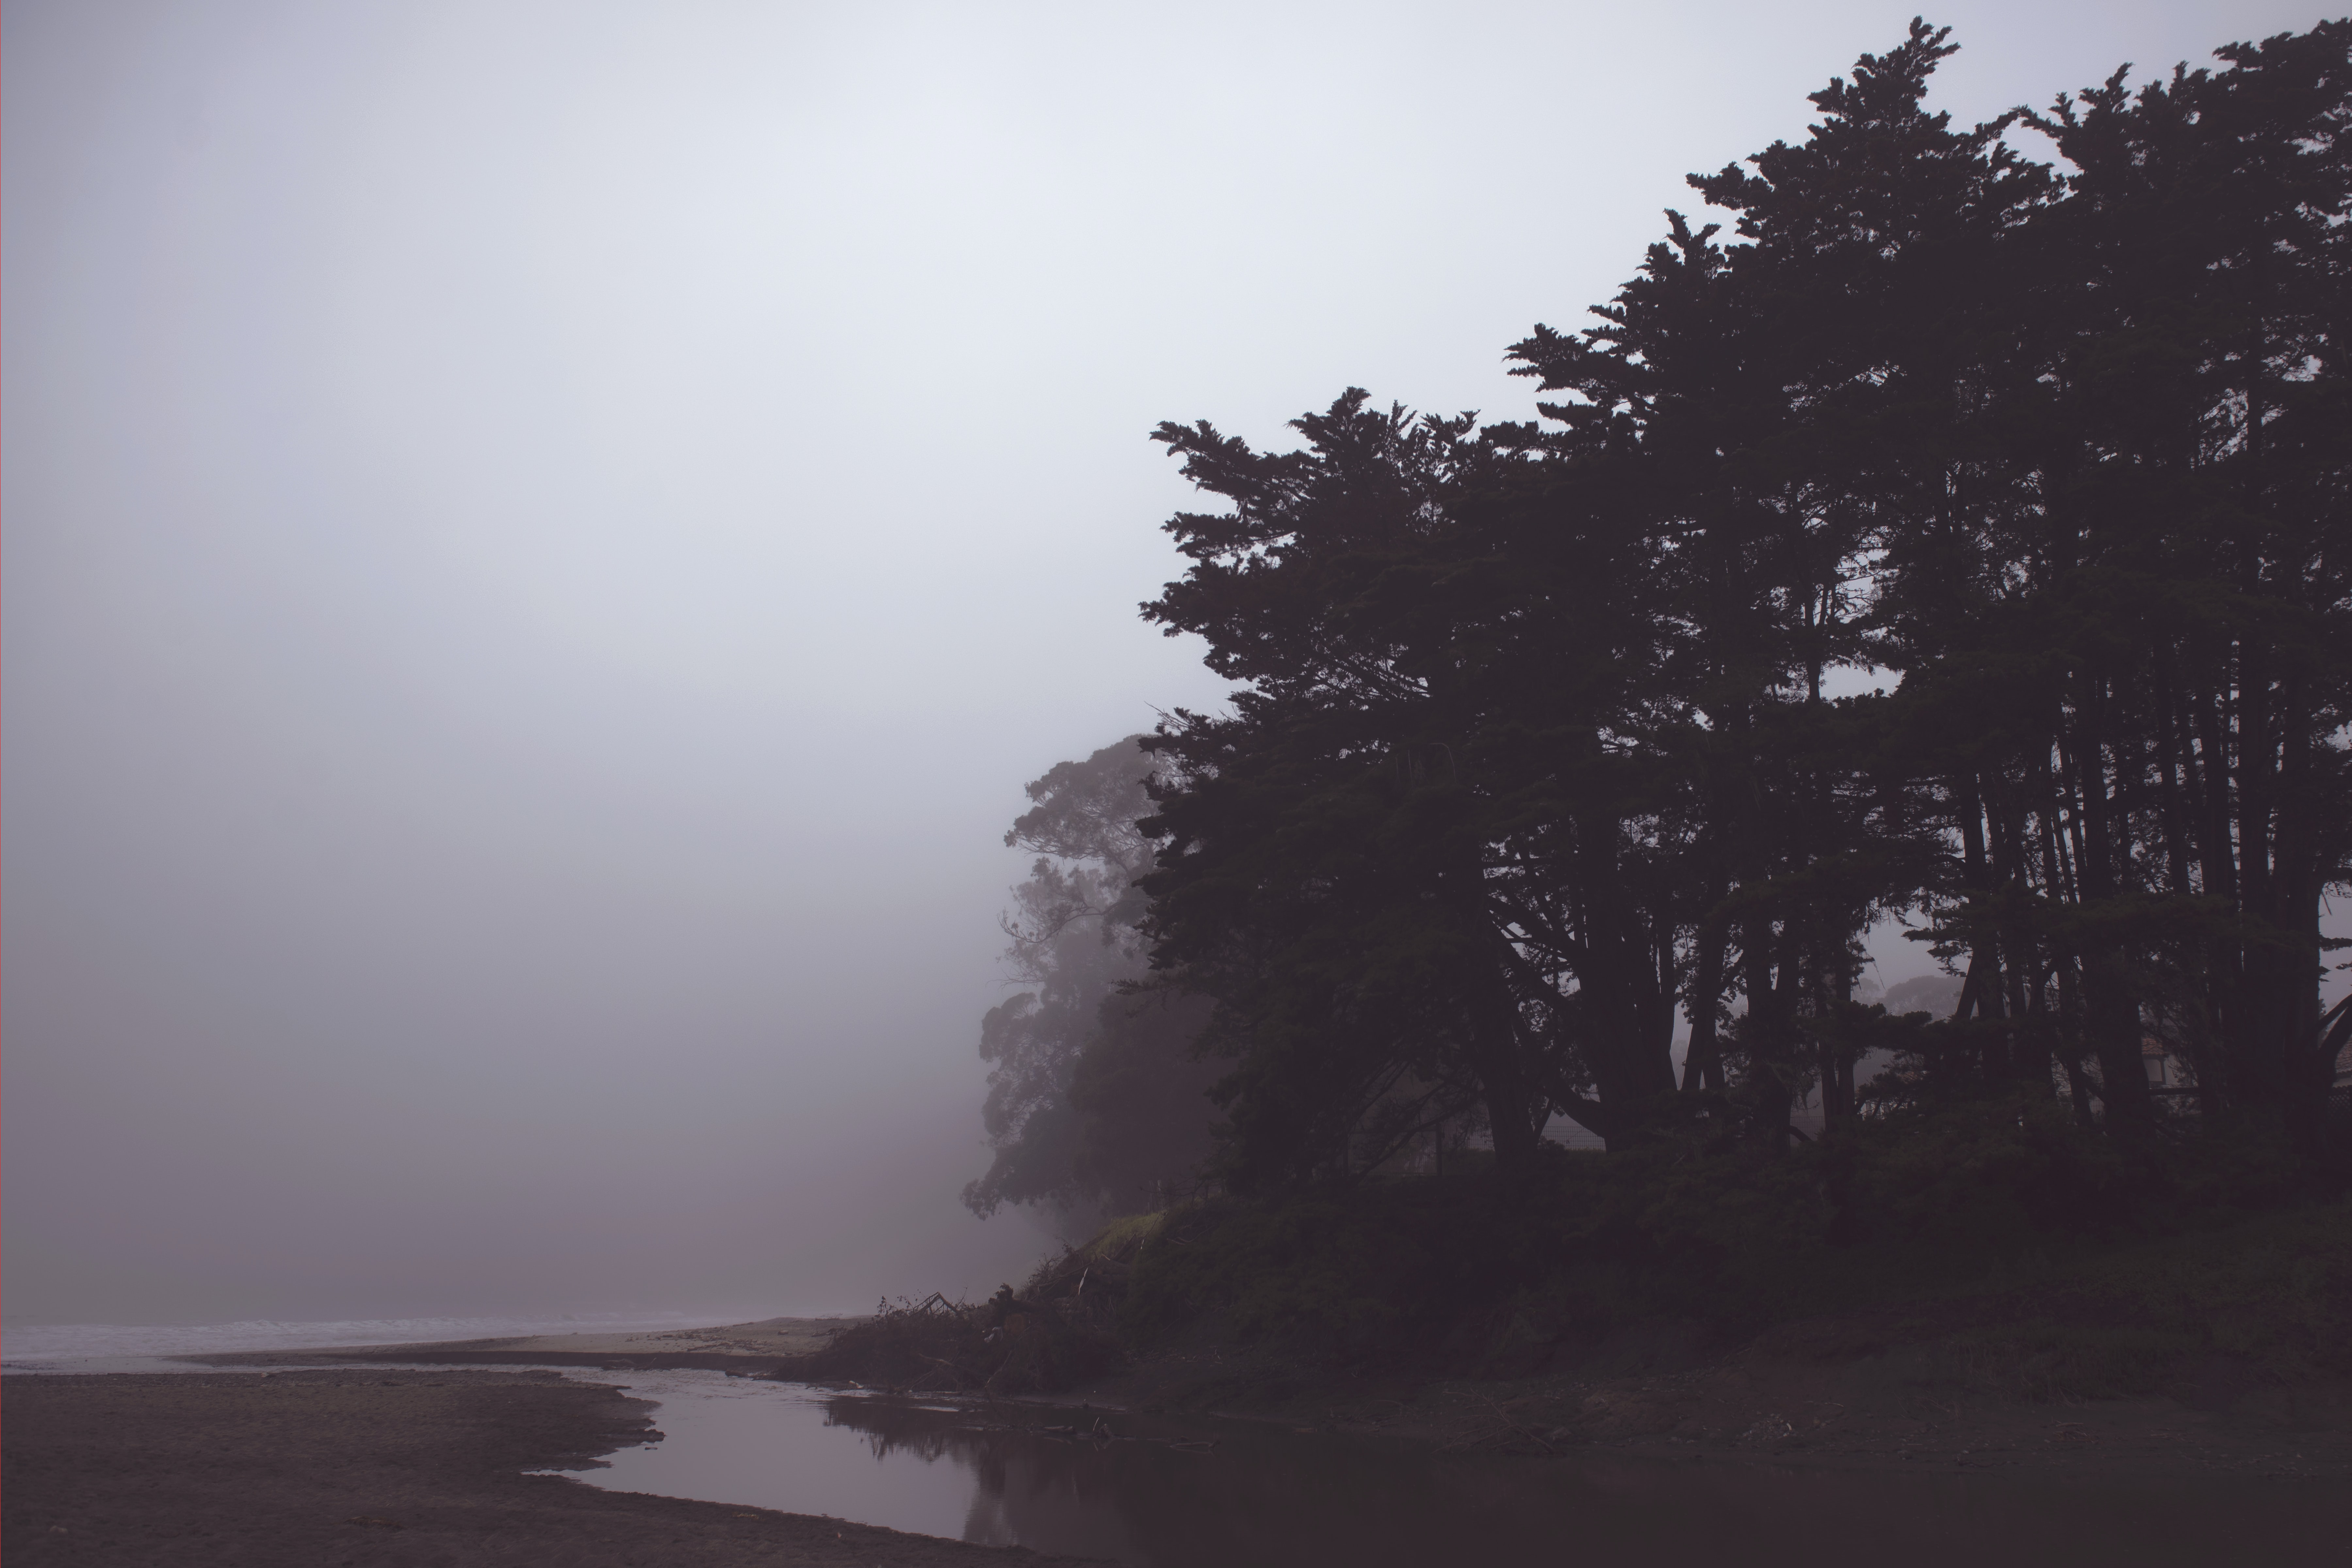 Foggy creek in San Simeon by silhouettes of trees